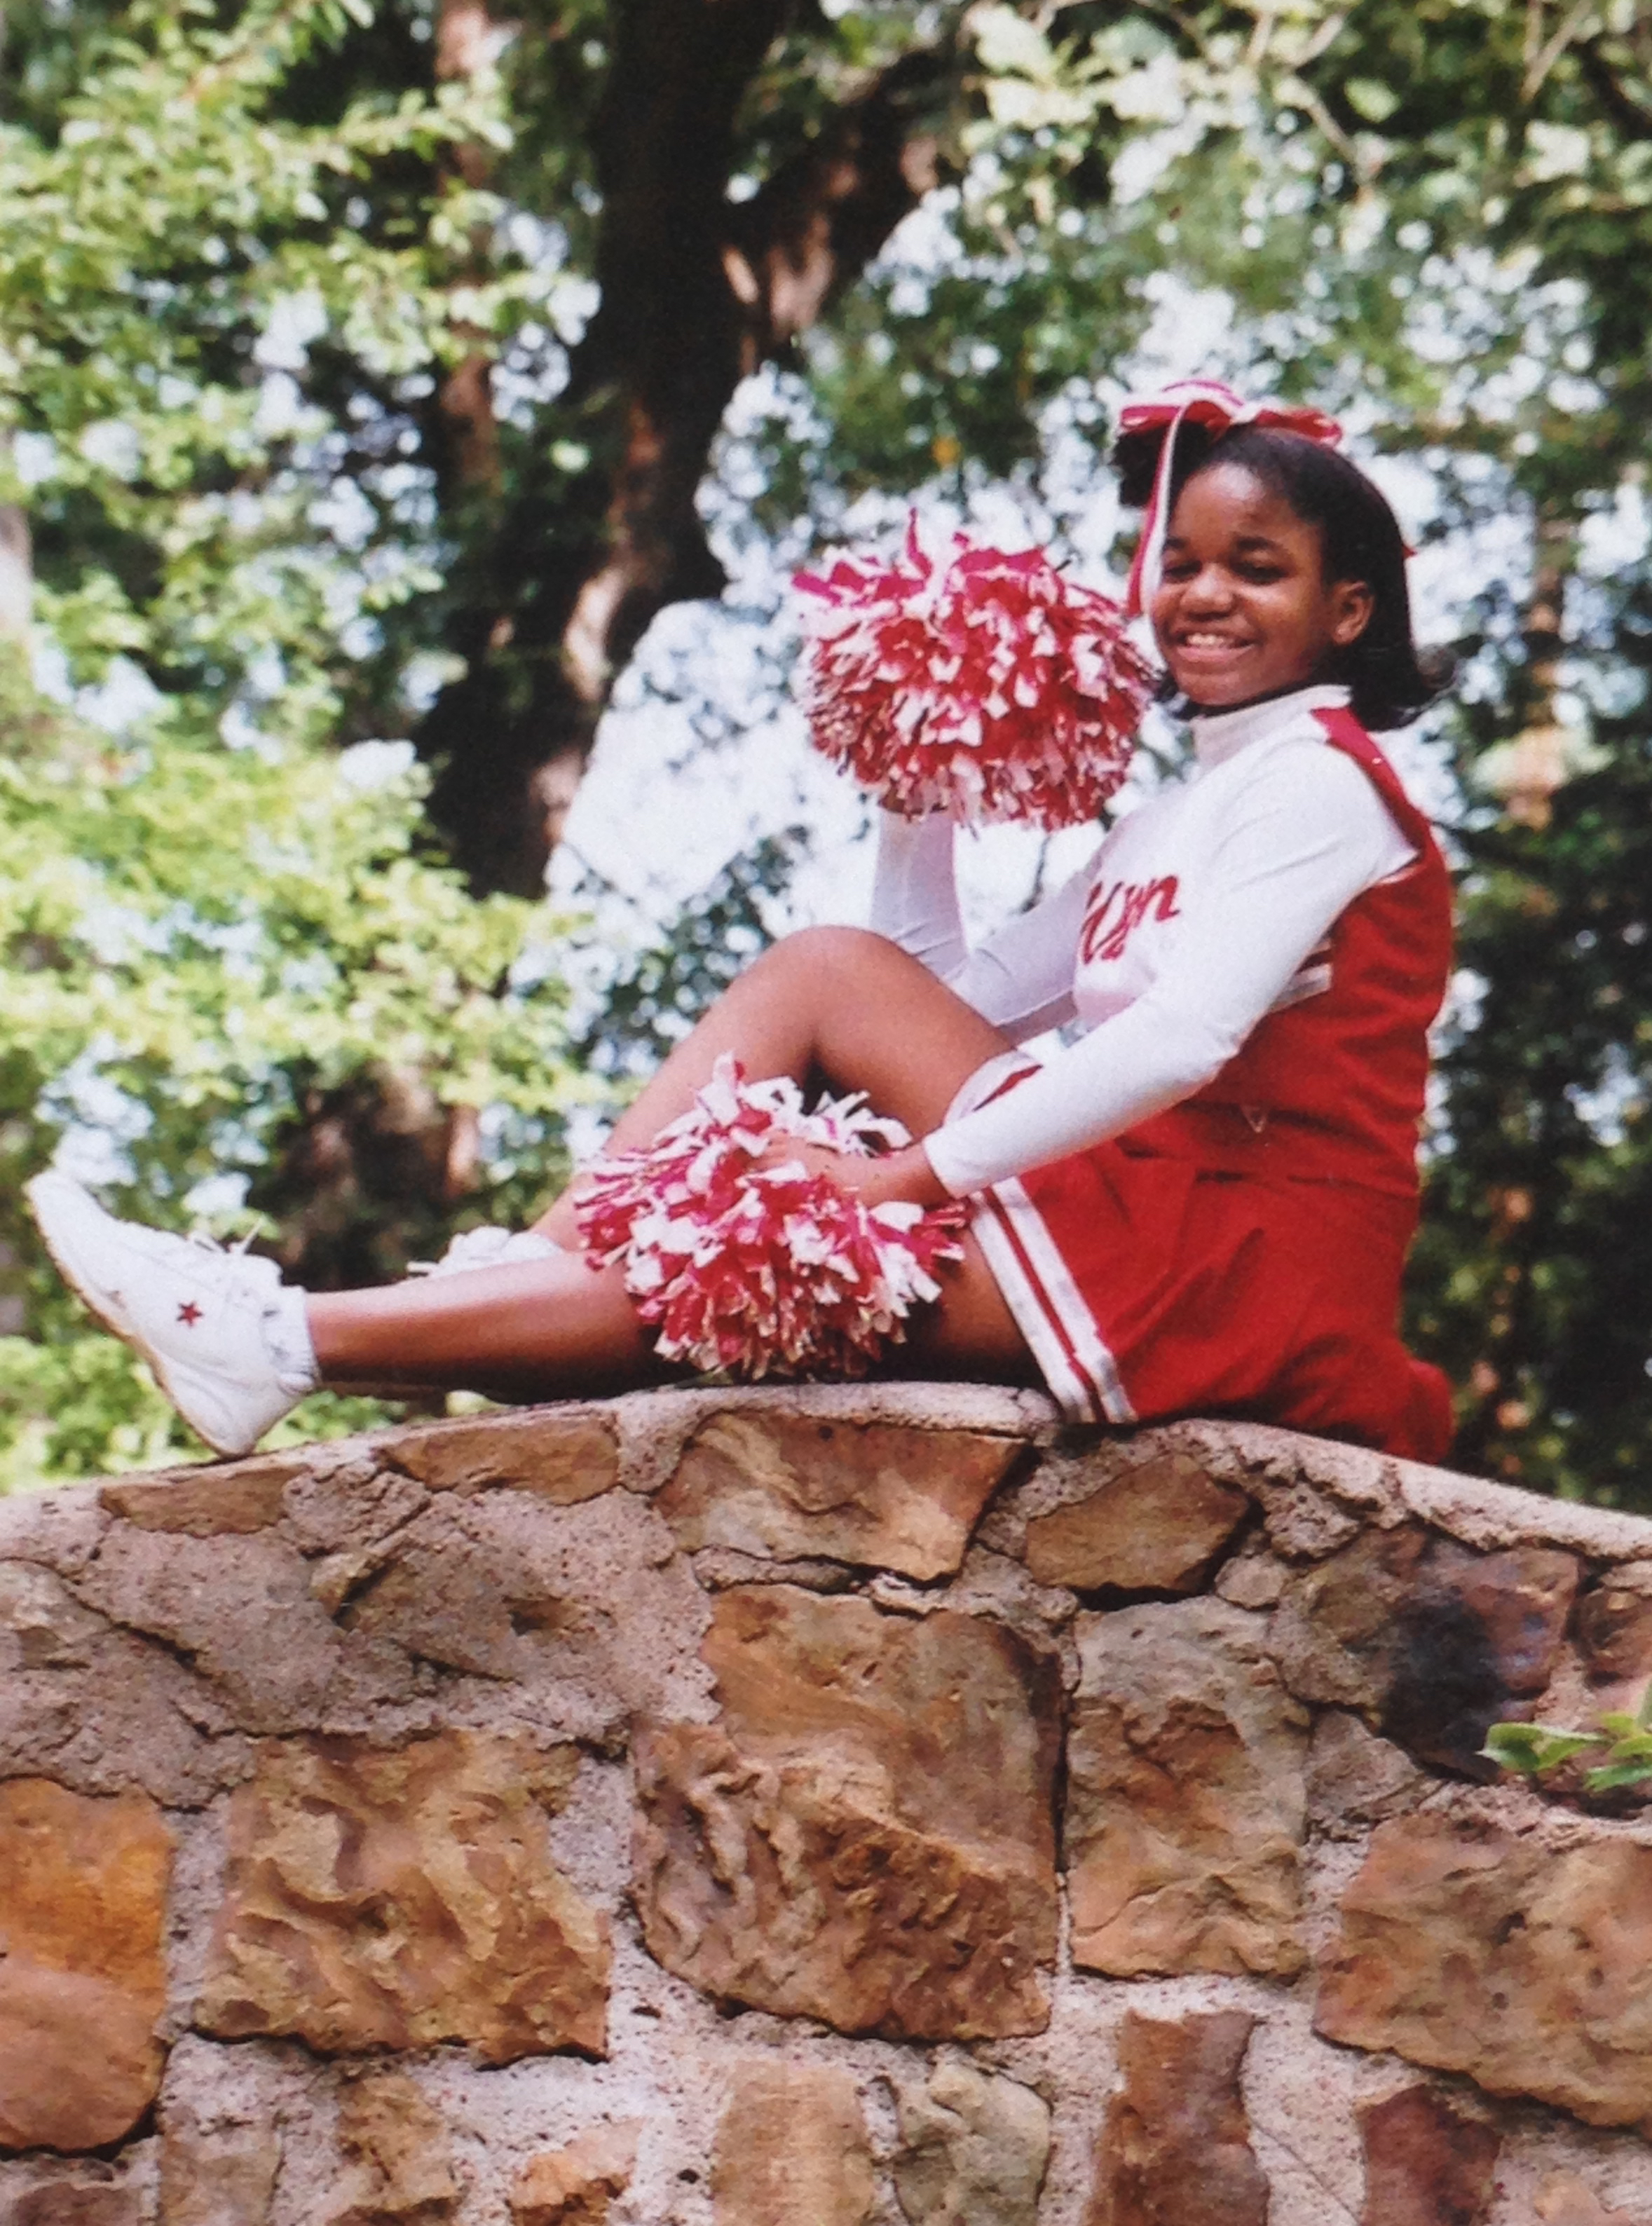 Wilson Cheerleader 3